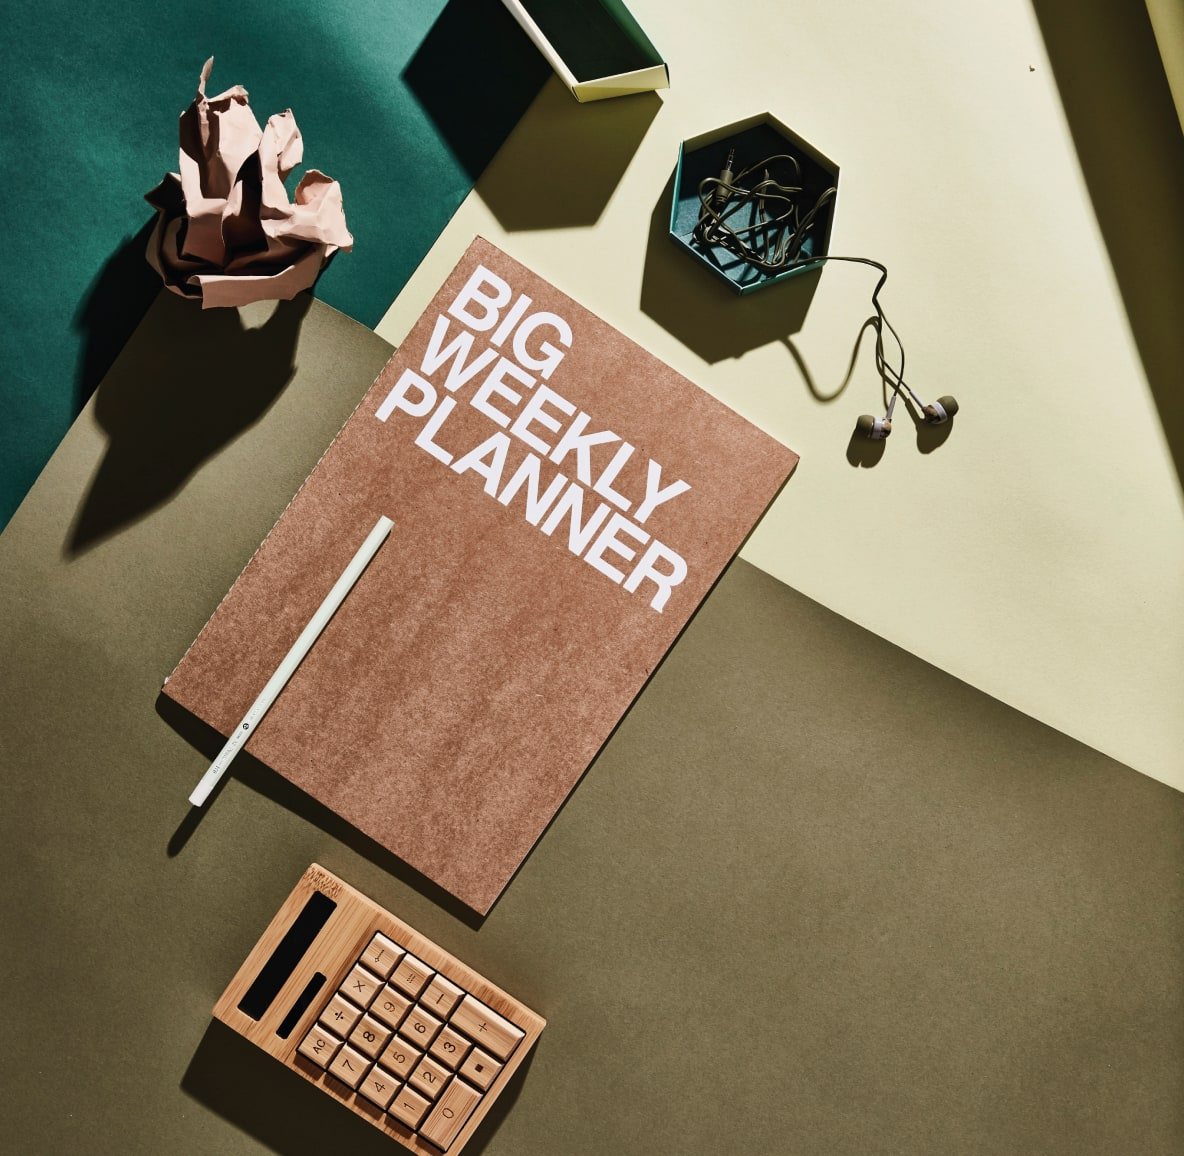 Desk accessories including a chic weekly planner, geometric paper weights and a mini calculator